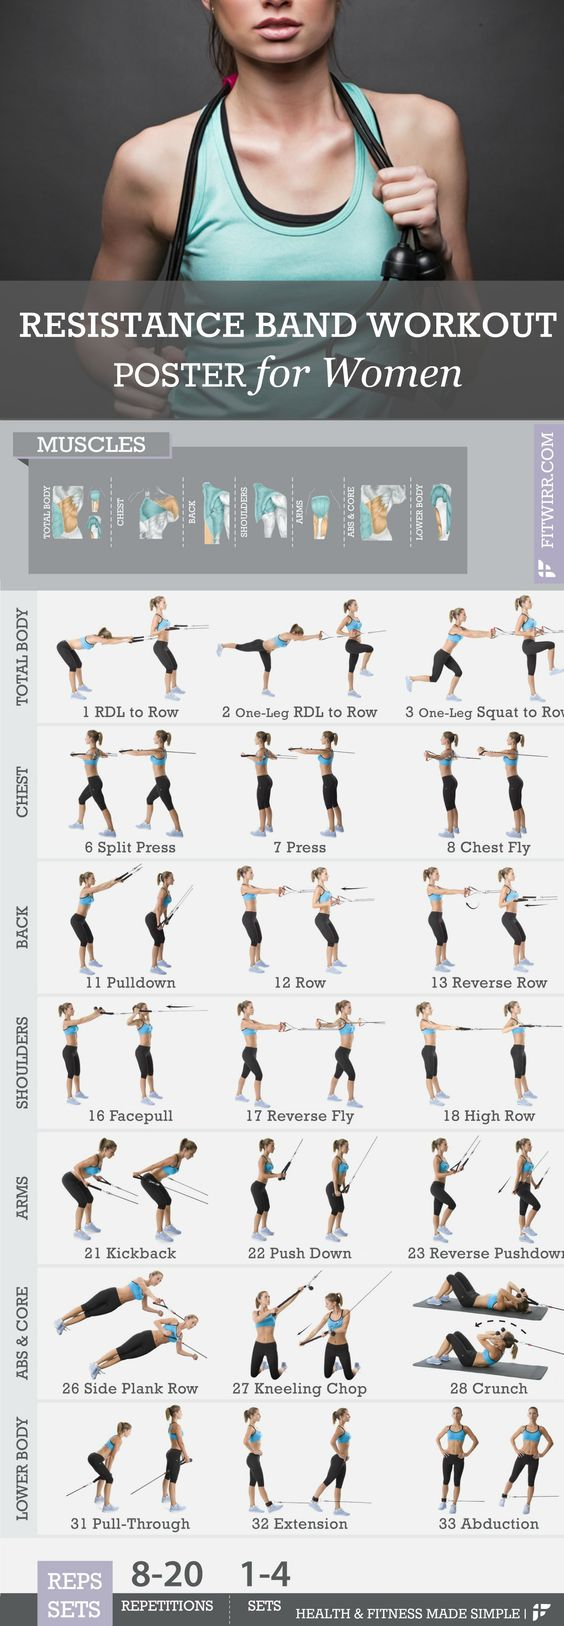 Tips for Using Resistance Bands